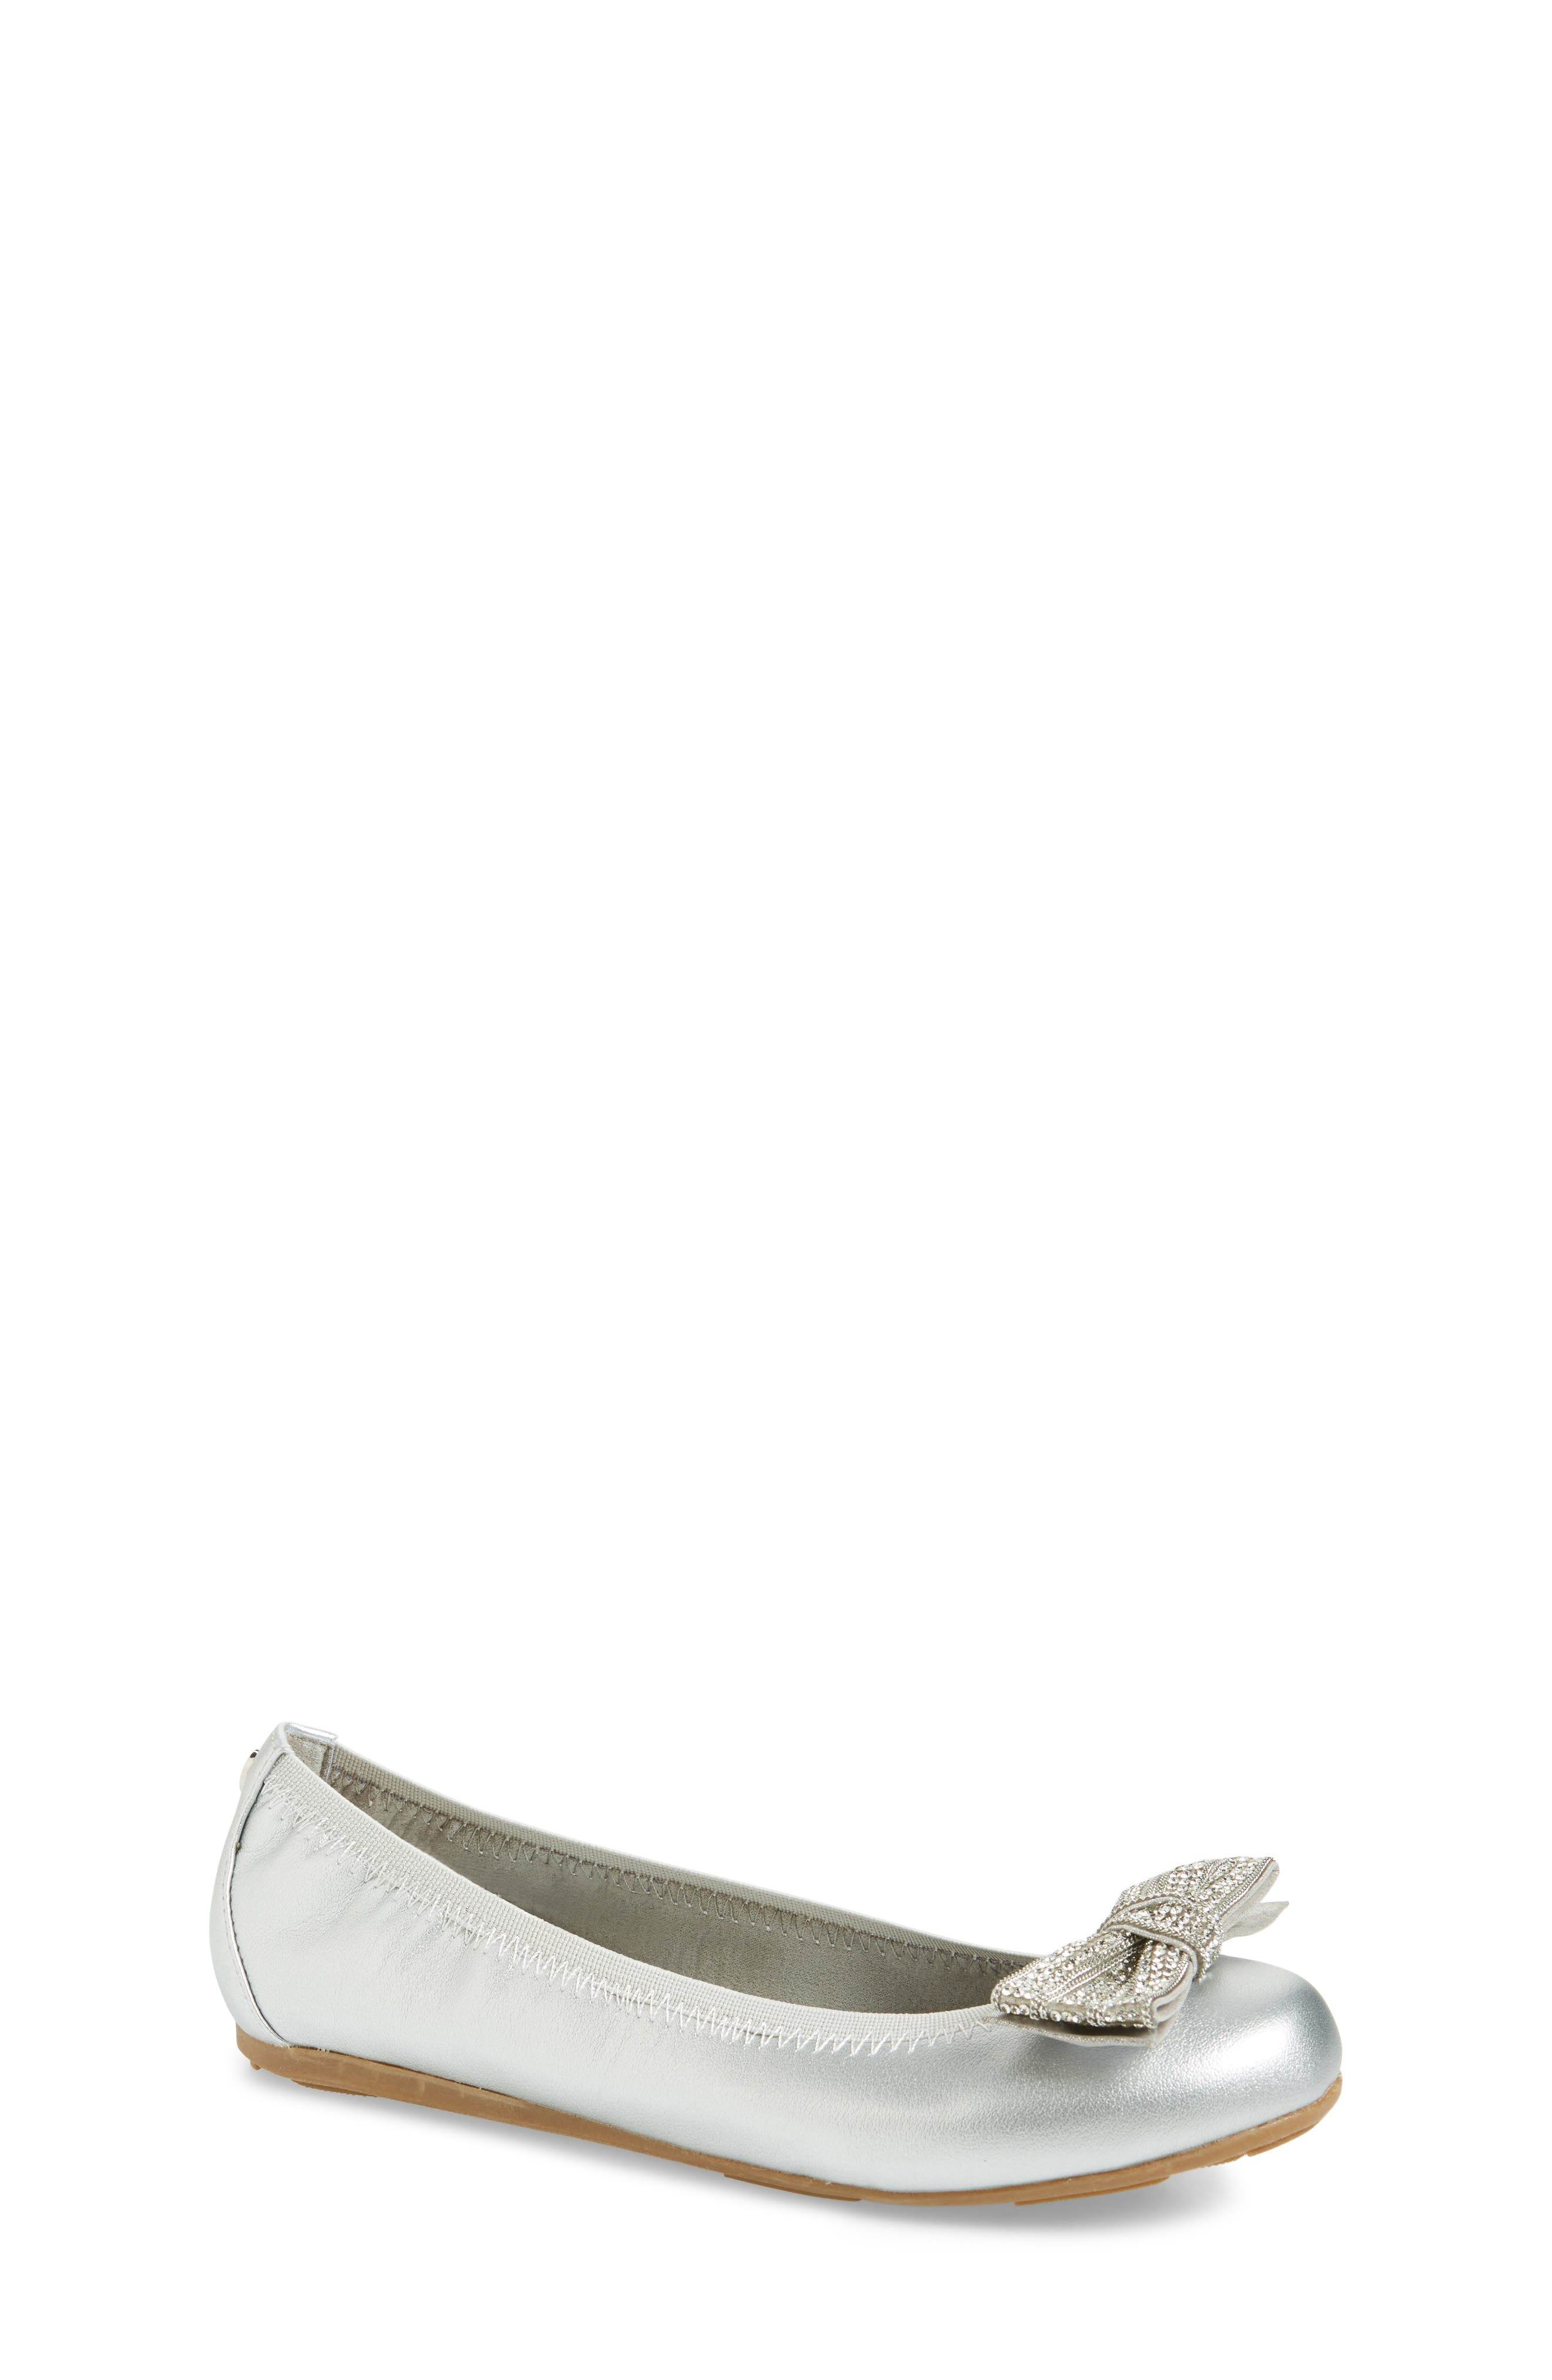 Fannie Embellished Bow Ballet Flat,                         Main,                         color, 044